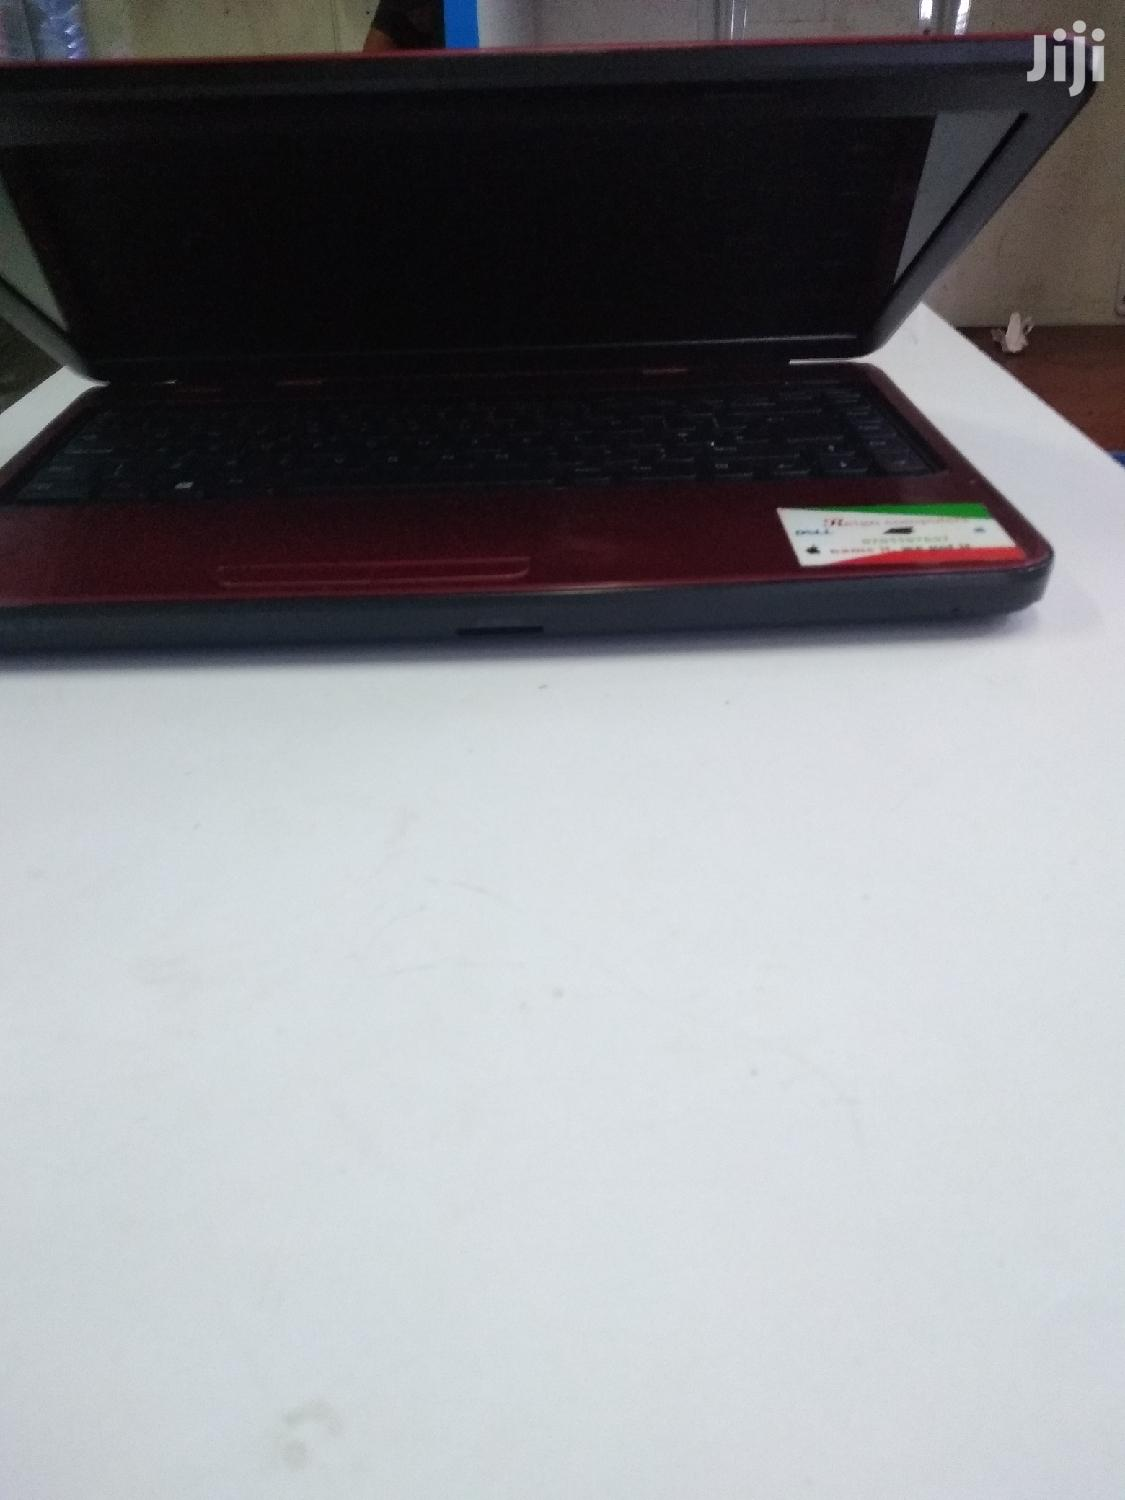 Laptop Dell Inspiron 3443 4GB Intel Core i3 HDD 500GB